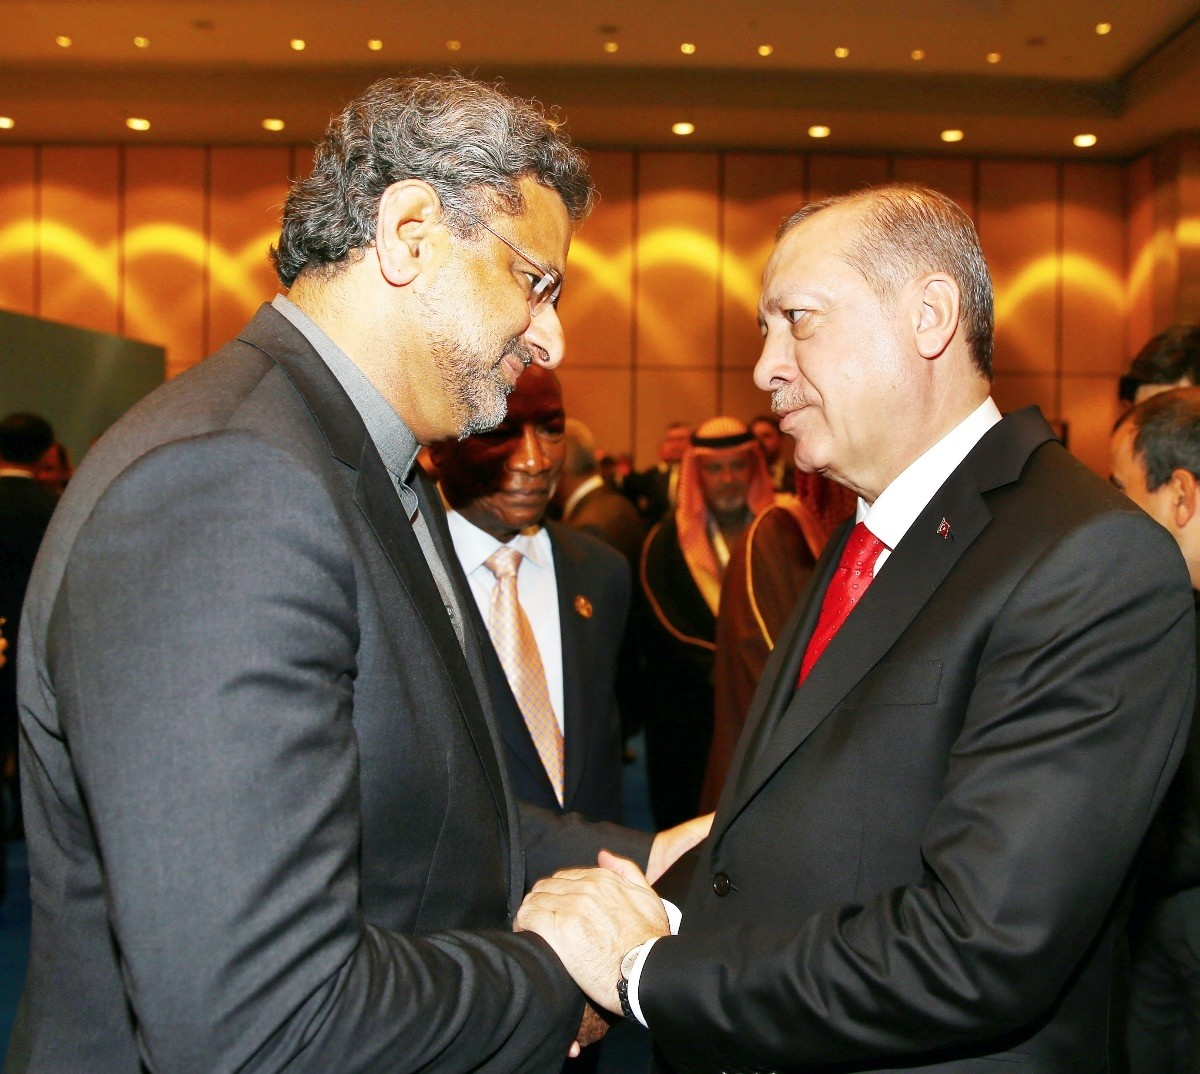 President Recep Tayyip Erdou011fan (R) with Pakistani Prime Minister Shadid Khaqan Abbasi (L) at the Extraordinary Summit of the Organisation of Islamic Cooperation (OIC) on Jerusalem, Istanbul, Dec.13, 2017.